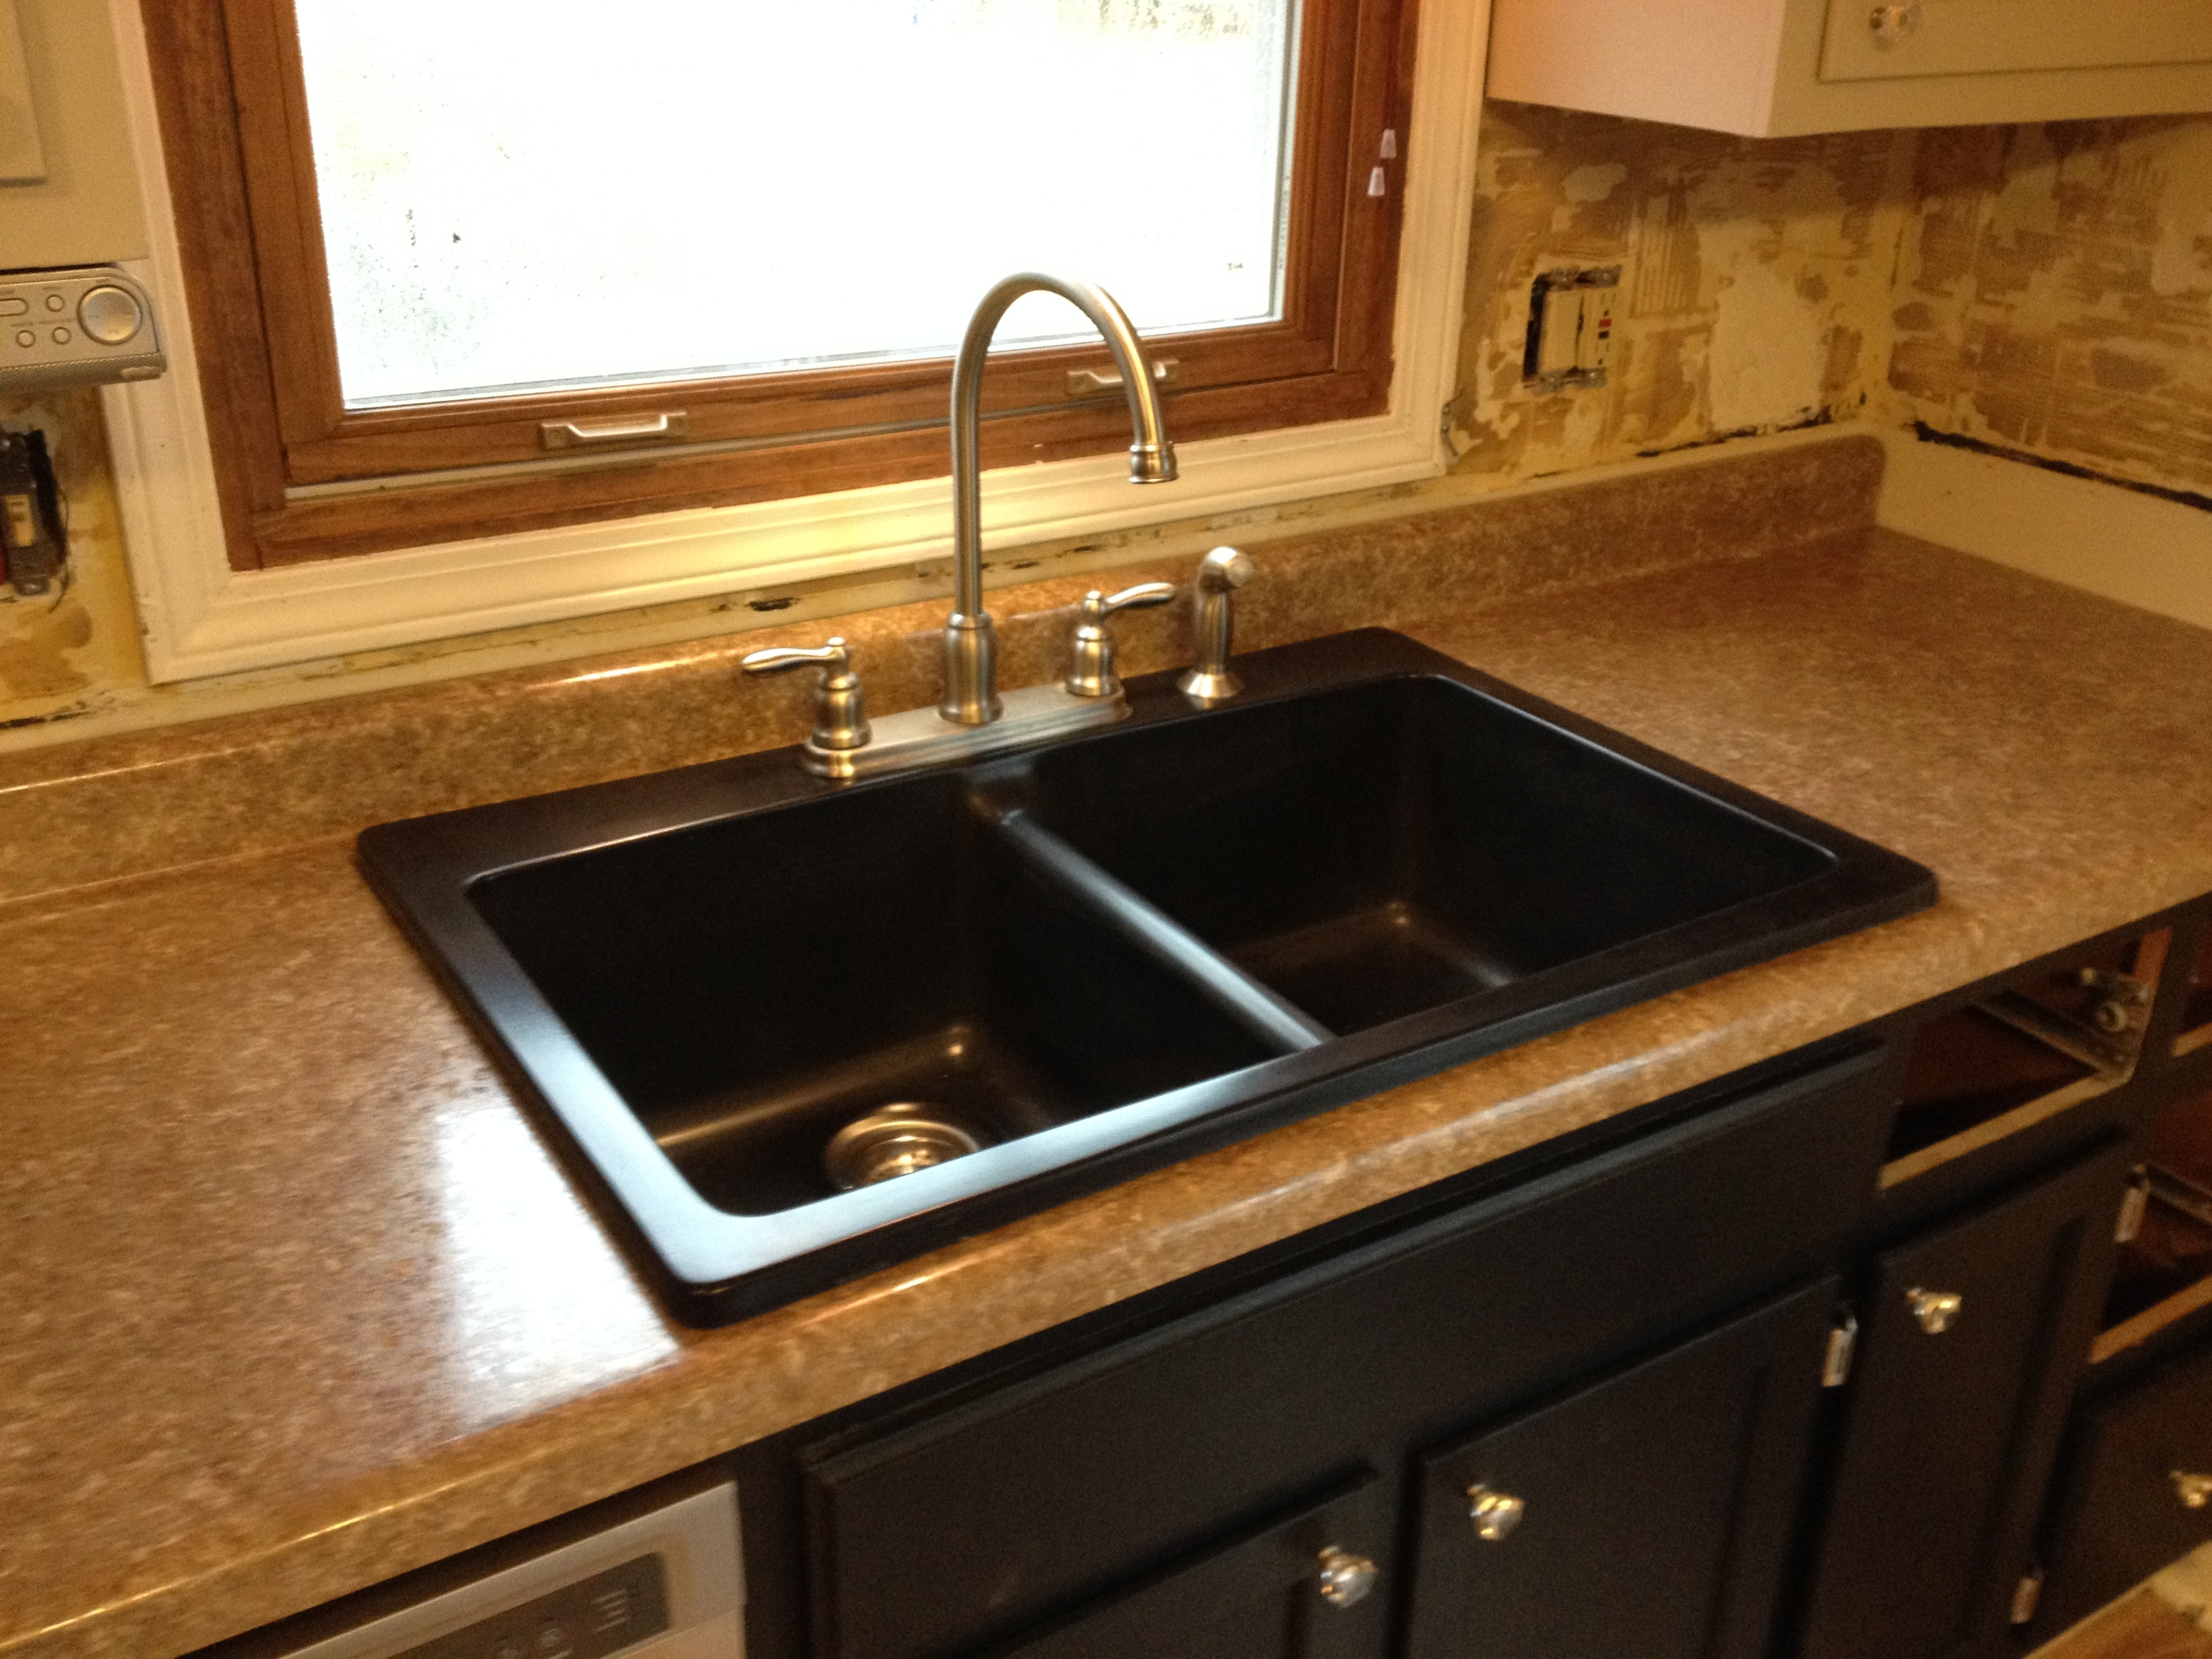 kitchen counter top sink replacement bryan ohio replacing a kitchen sink Kitchen Counter Top Sink Replacement Bryan